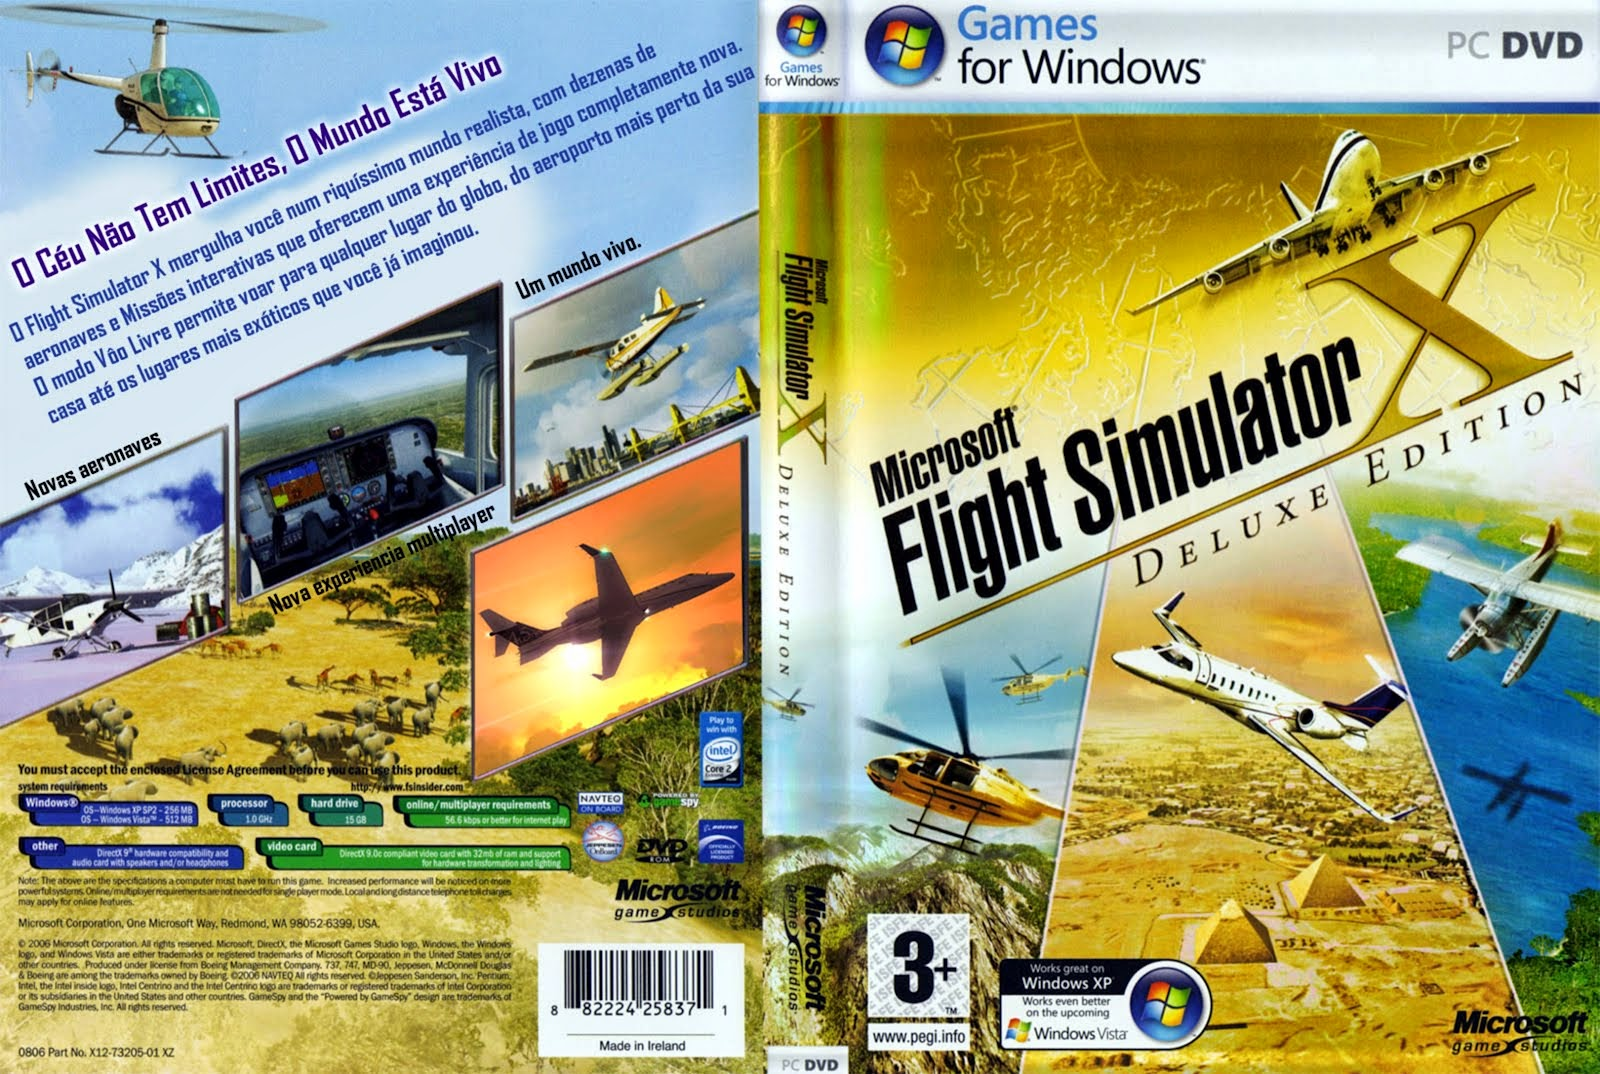 Download Flight Simulator X SP2 français ... - microsoft.com